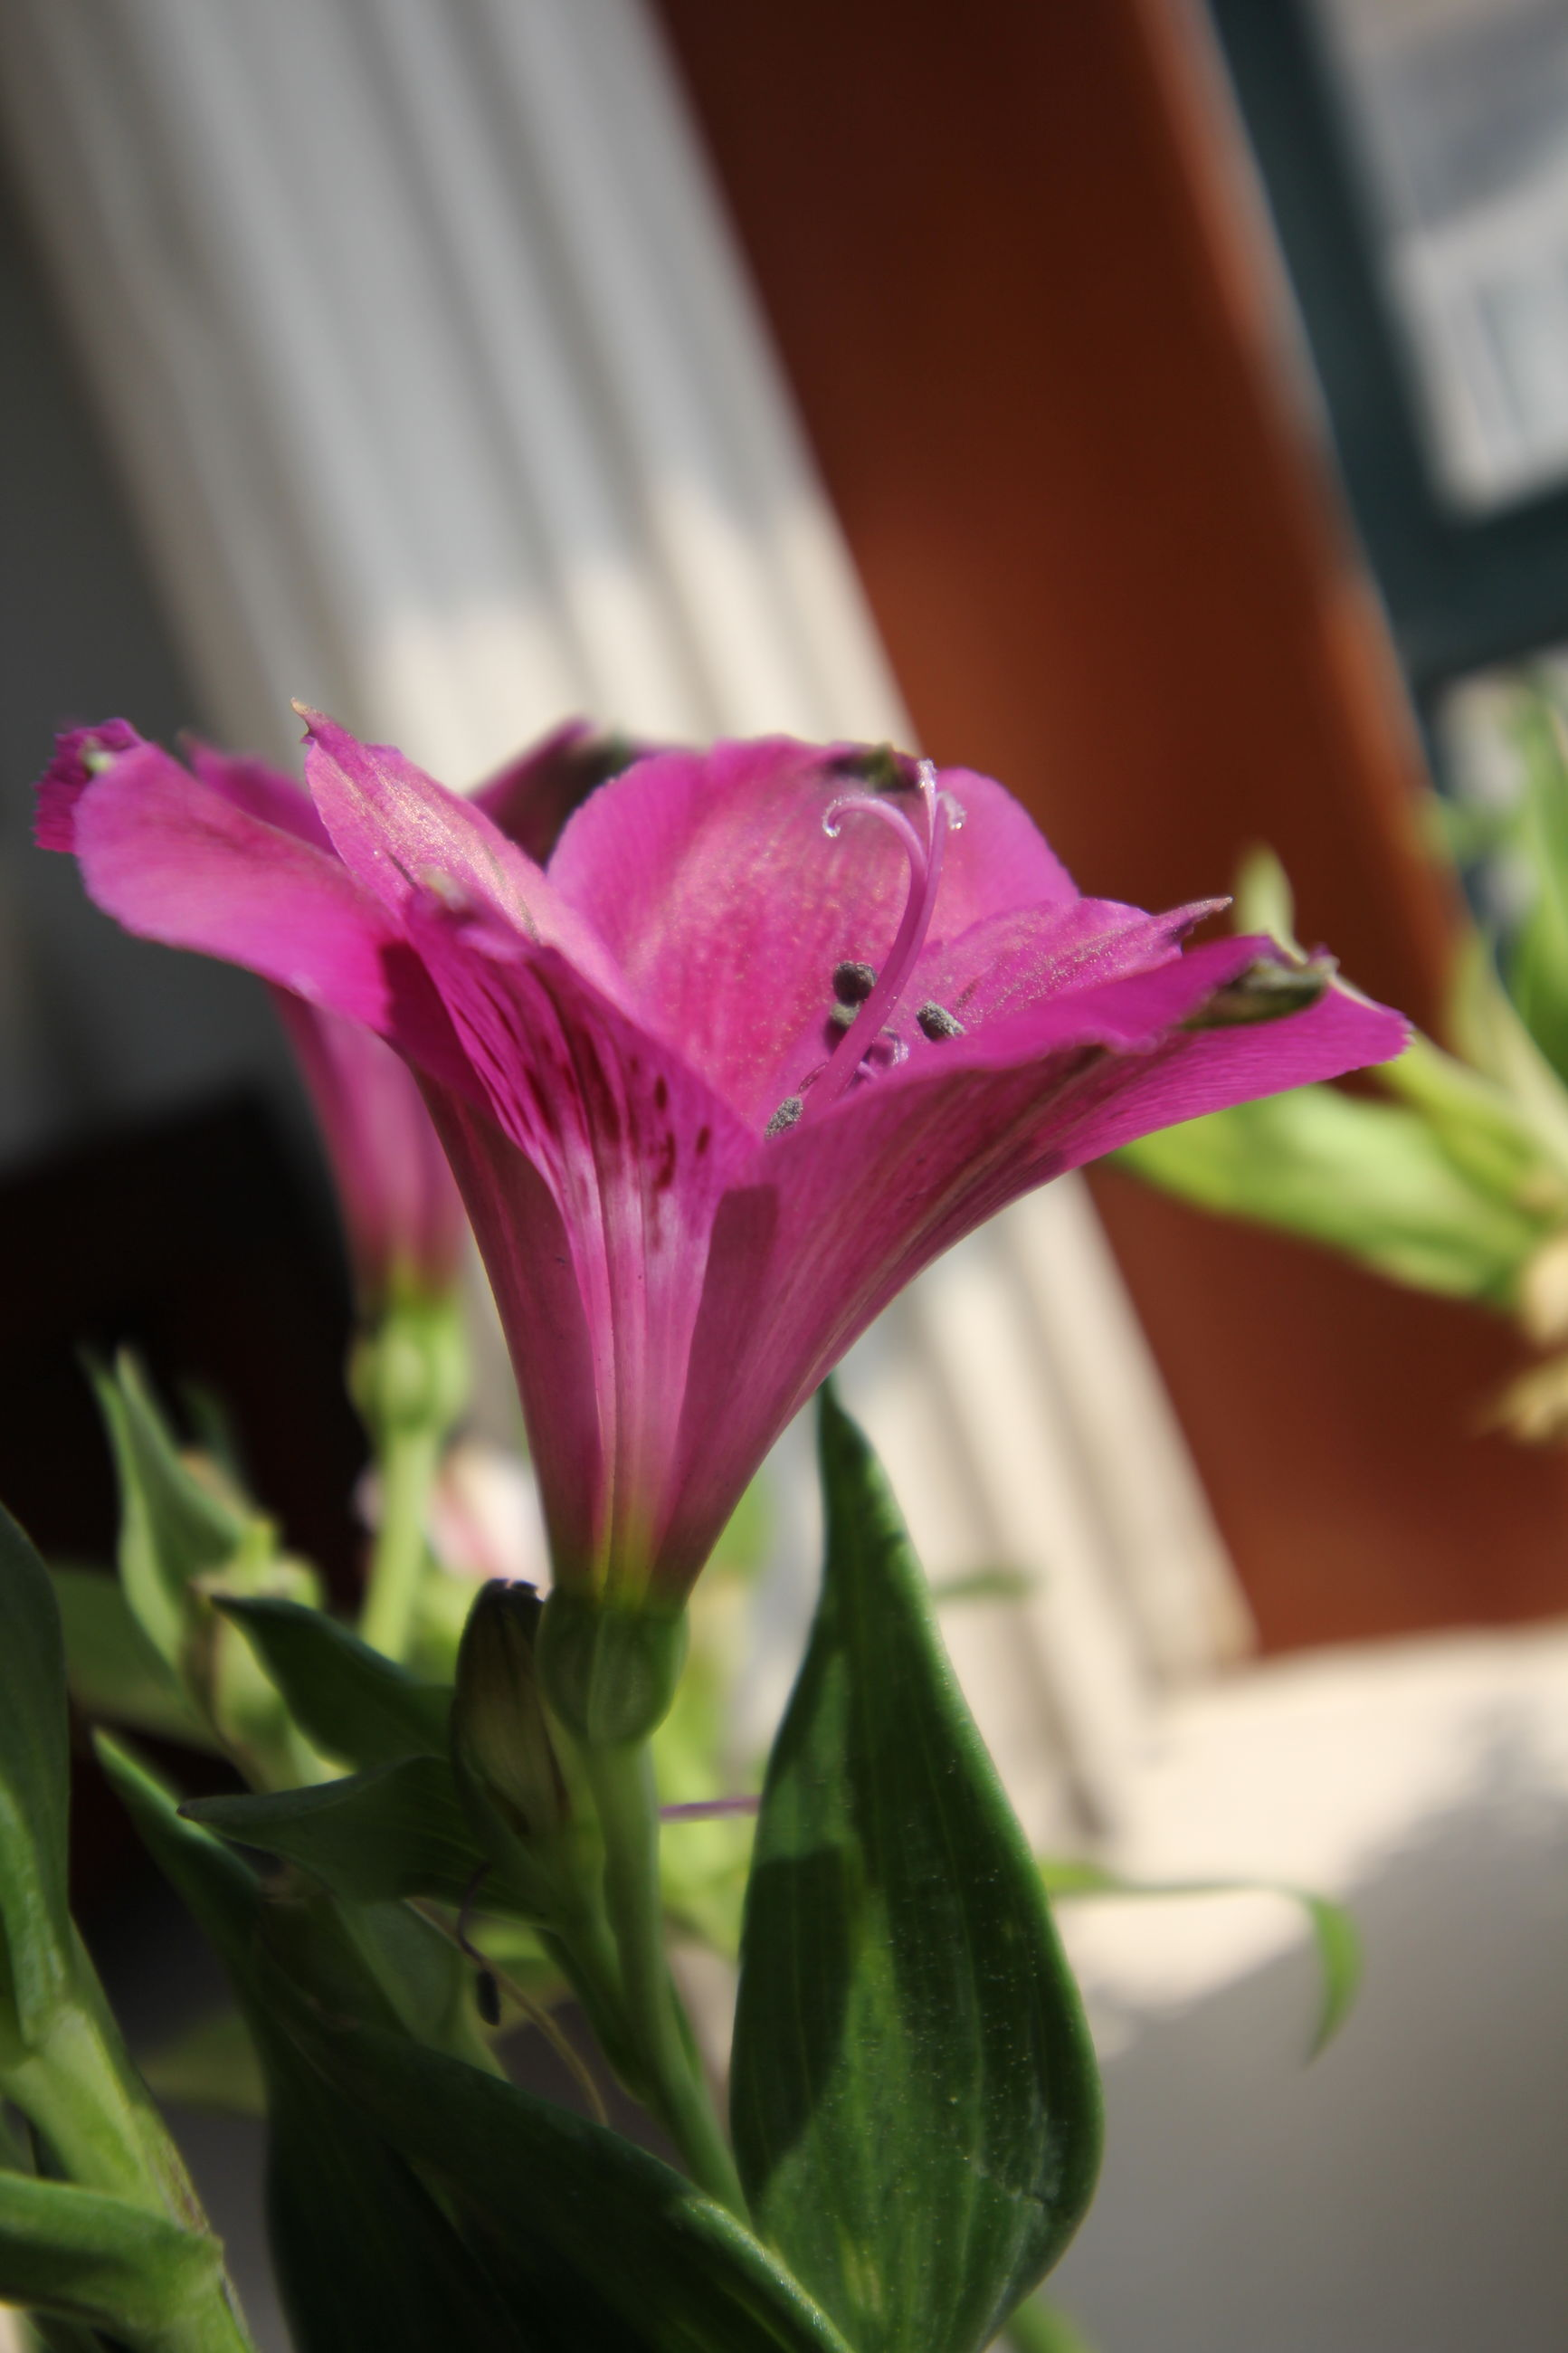 flower, freshness, fragility, petal, beauty in nature, nature, flower head, growth, close-up, focus on foreground, plant, blooming, pink color, day, no people, outdoors, day lily